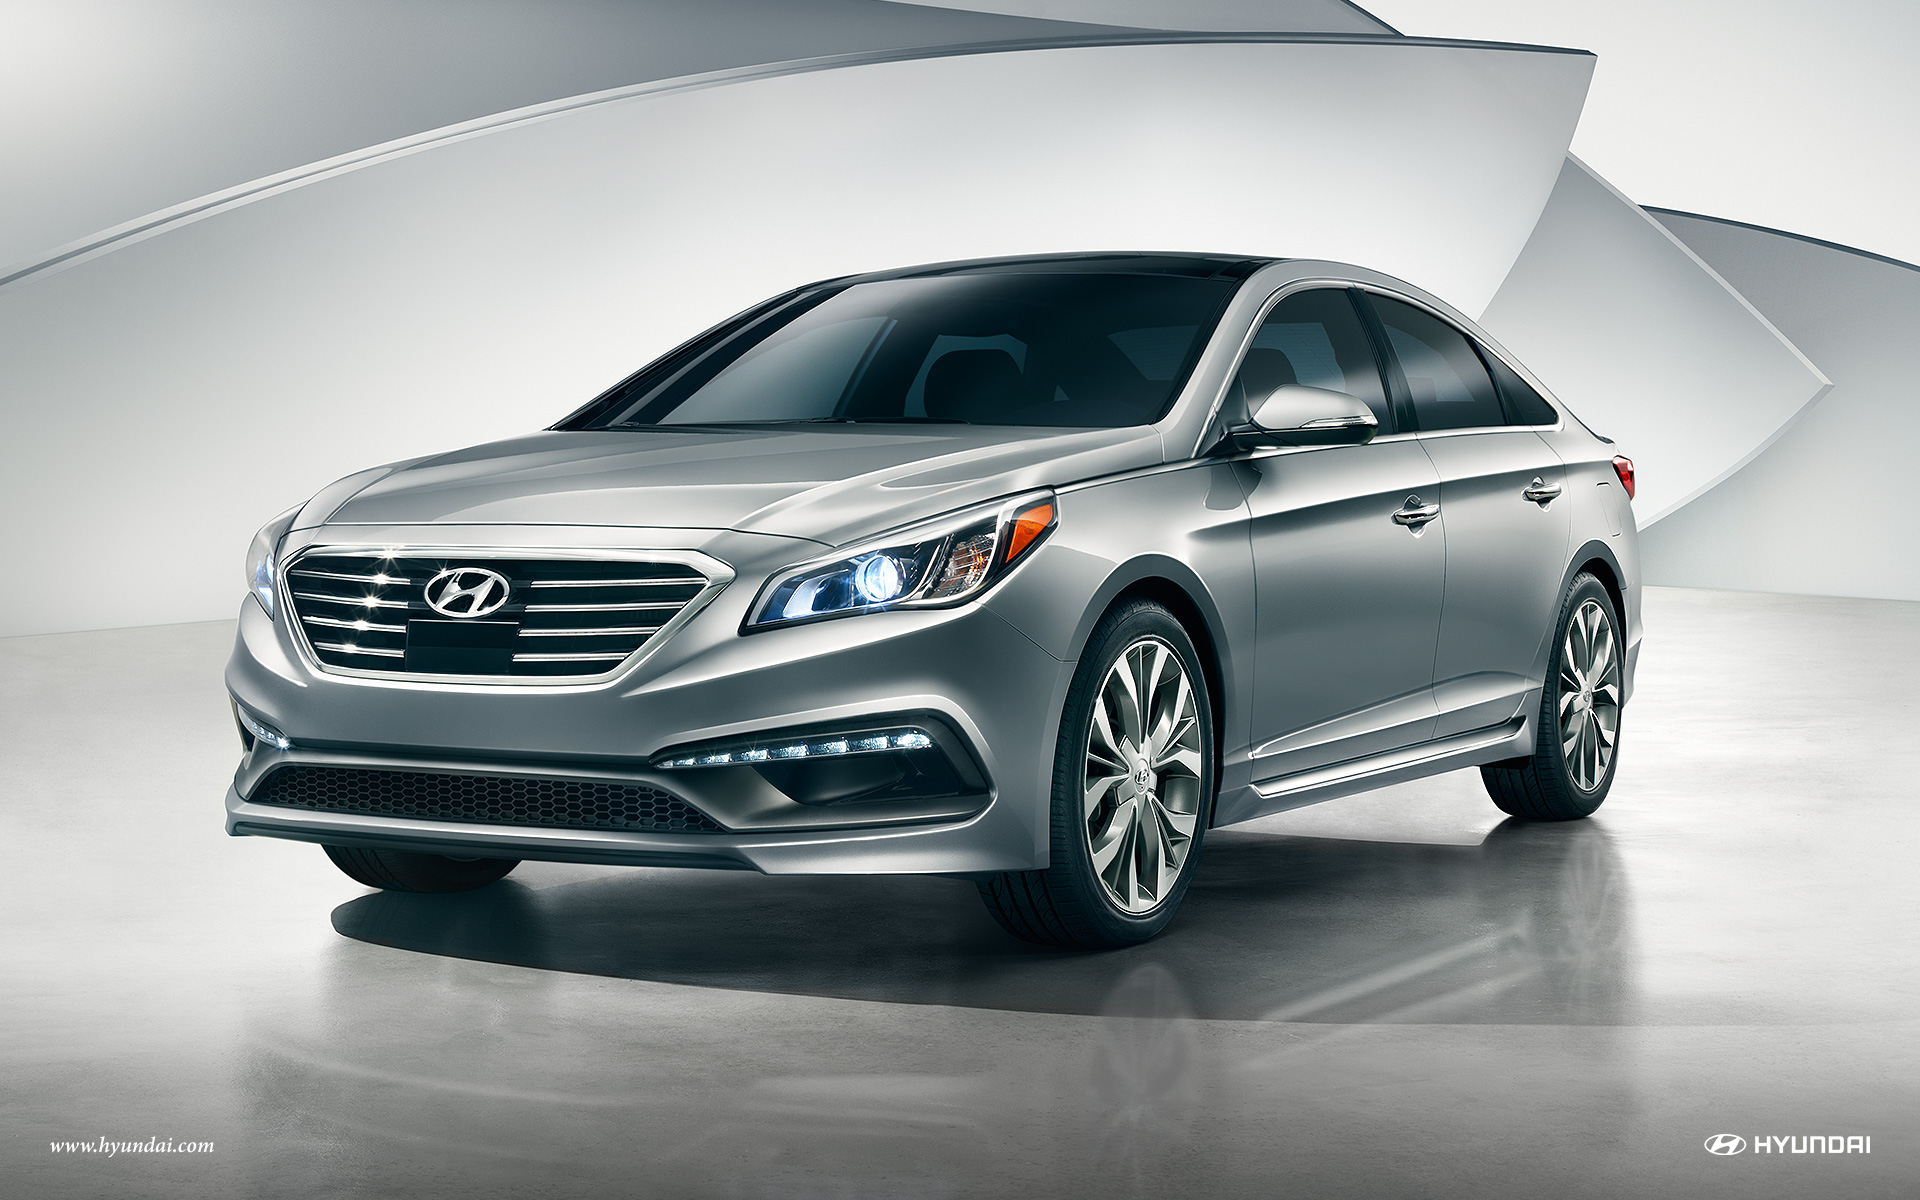 2016 Hyundai Sonata vs 2016 Buick Regal near Stafford, VA